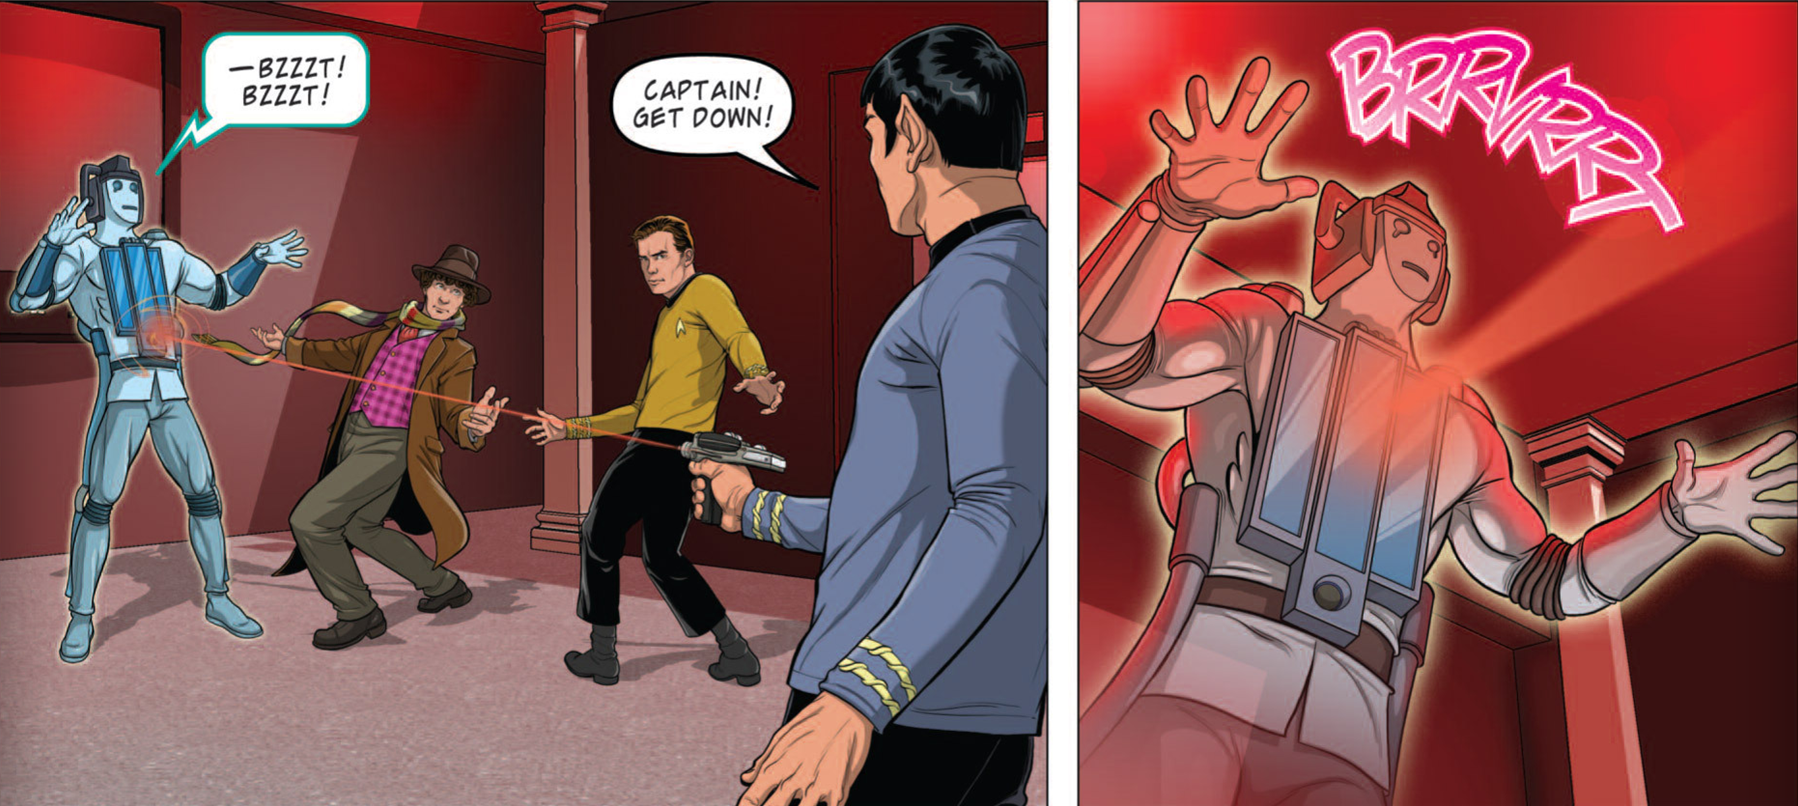 spock3.png